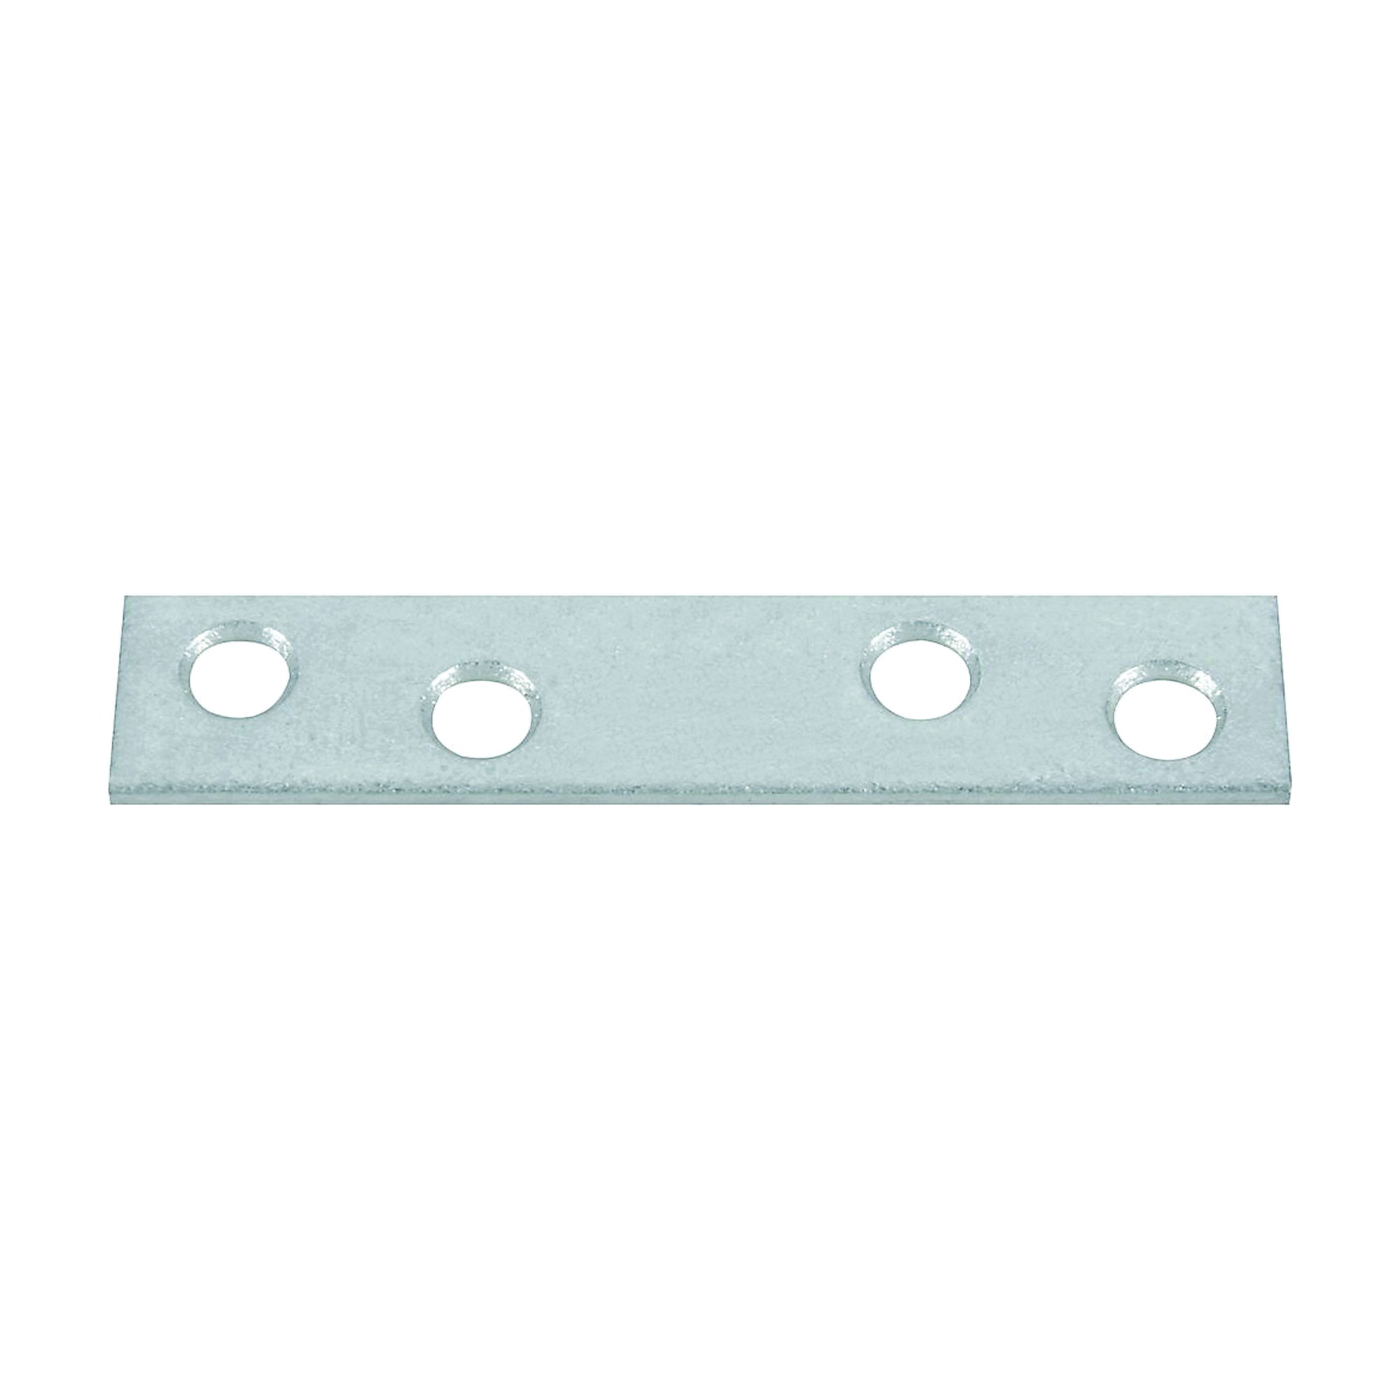 Picture of National Hardware N114-363 Mending Brace, 3 in L, 5/8 in W, Steel, Galvanized, Screw Mounting